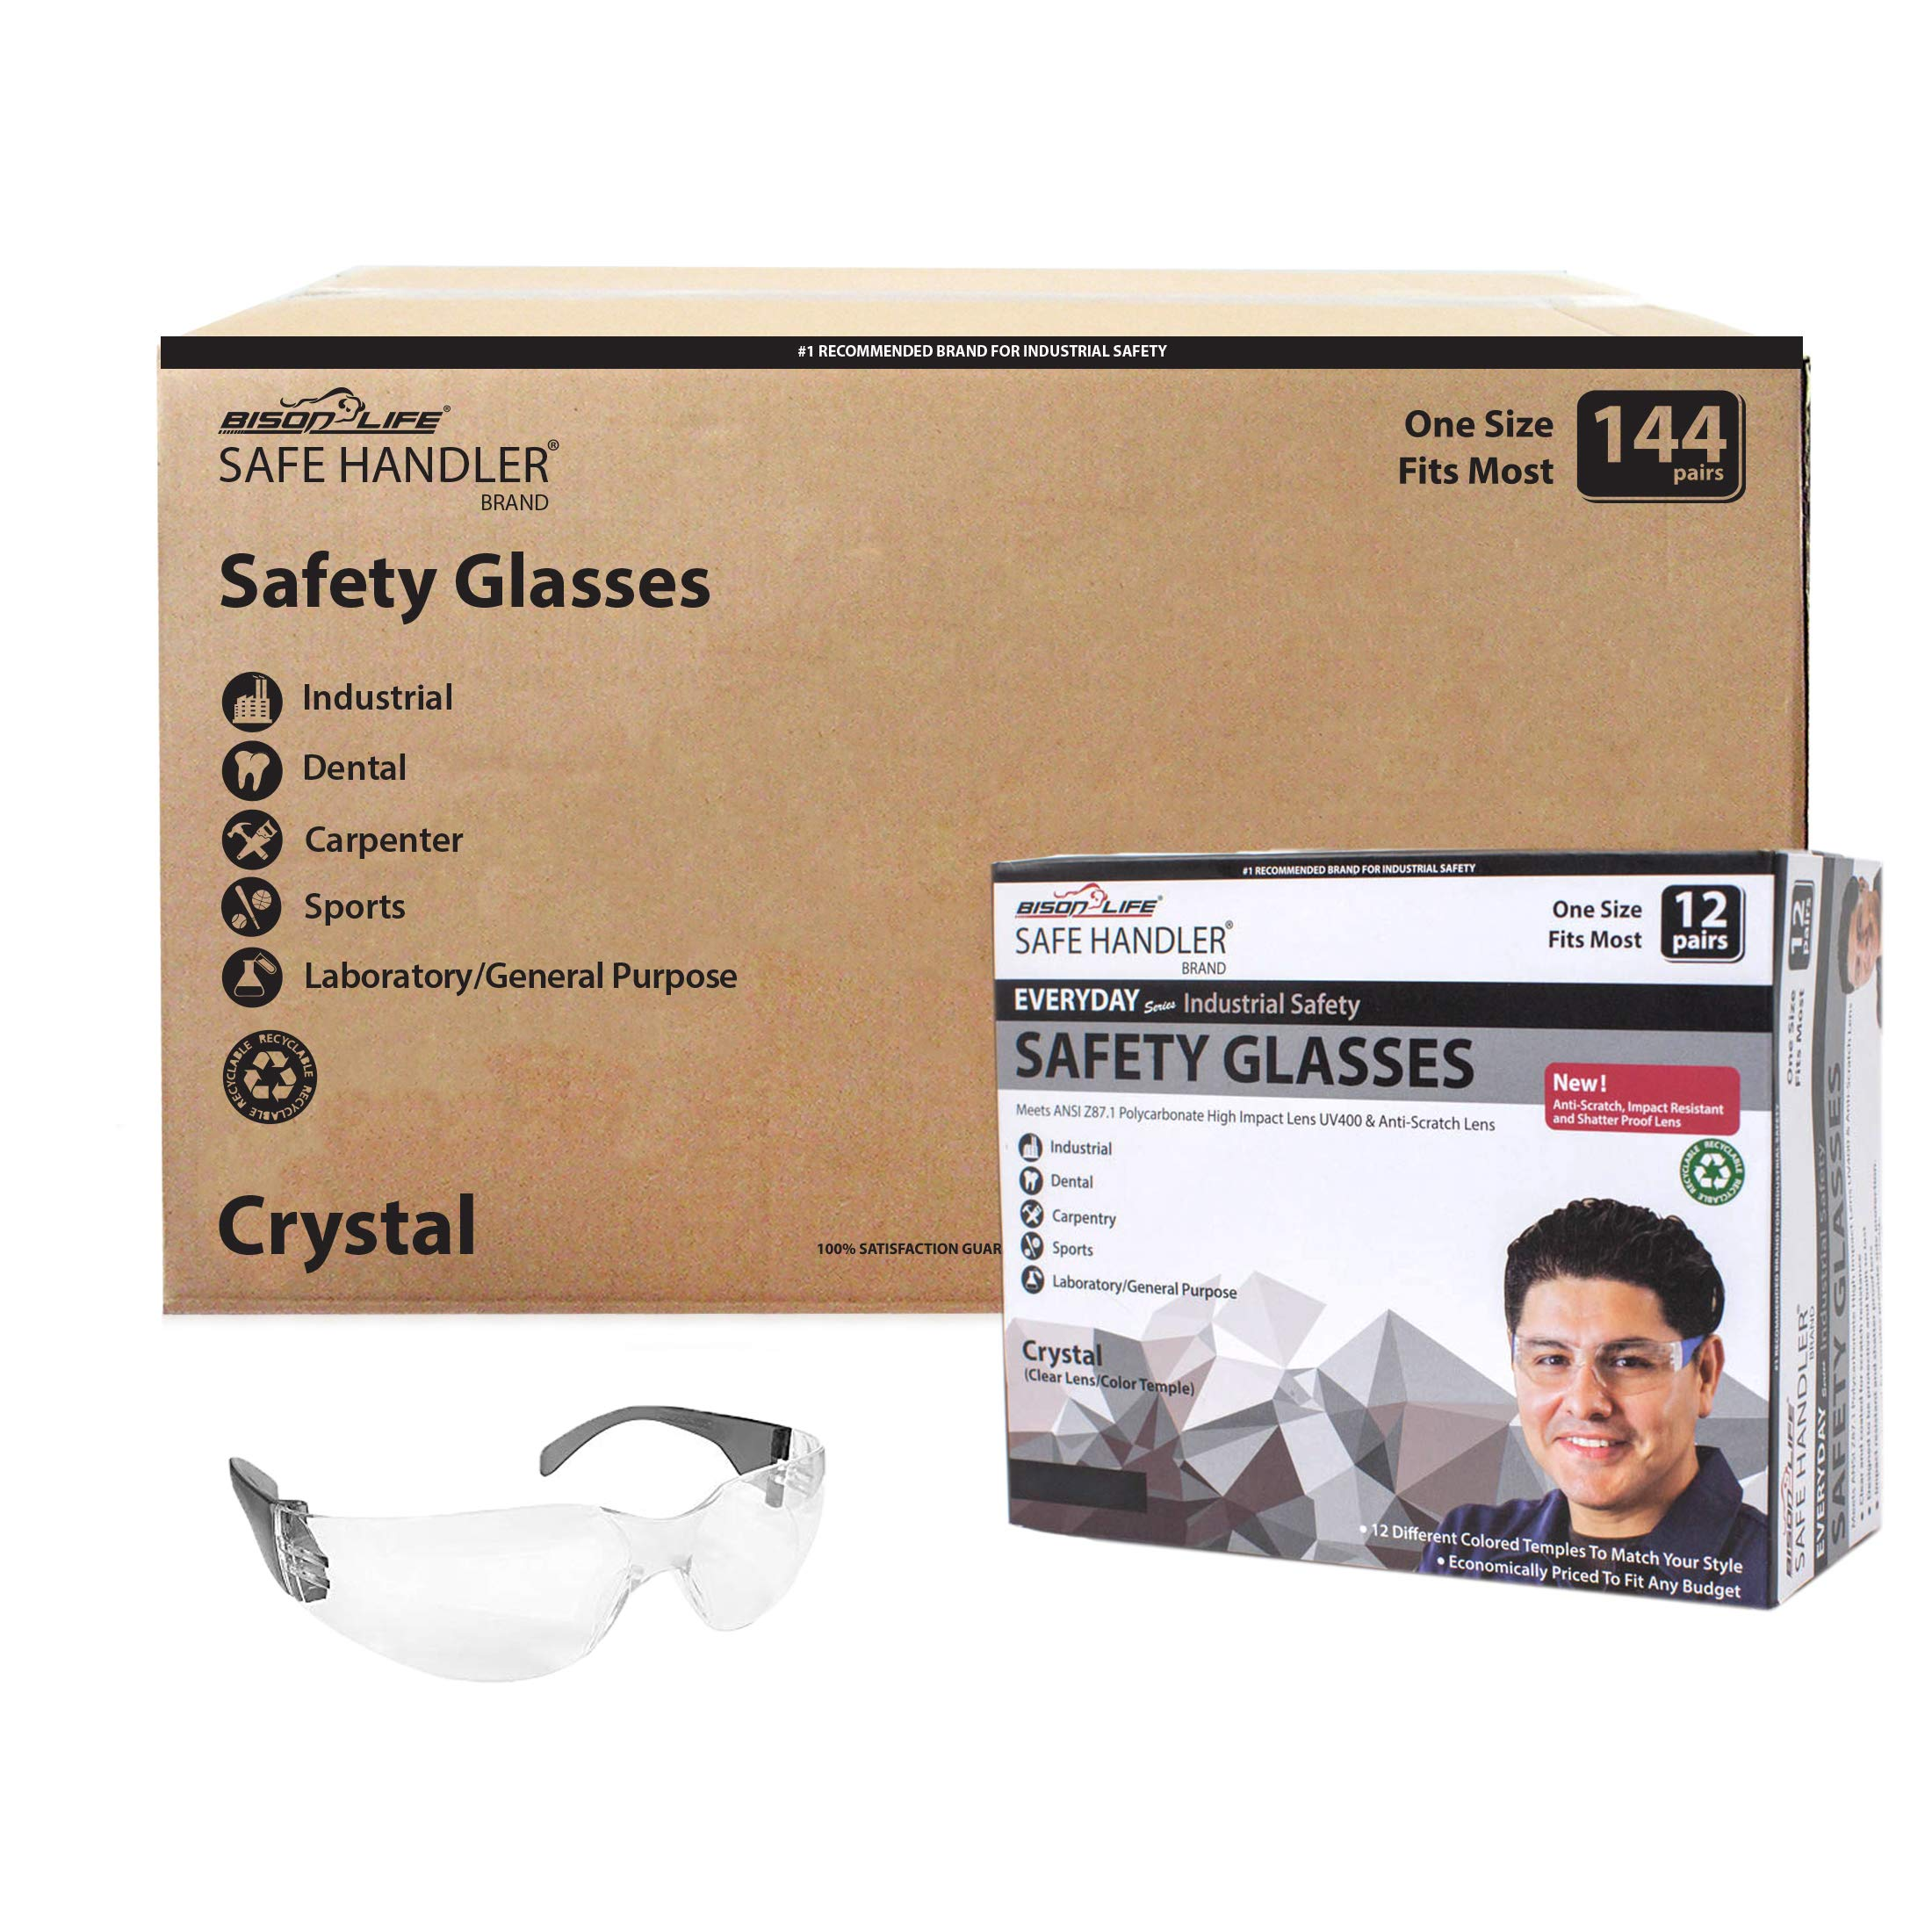 SAFE HANDLER Protective Safety Glasses, Clear Polycarbonate Impact and Ballistic Resistant Lens - Black Temple (Case of 12 Boxes, 144 Pairs Total)